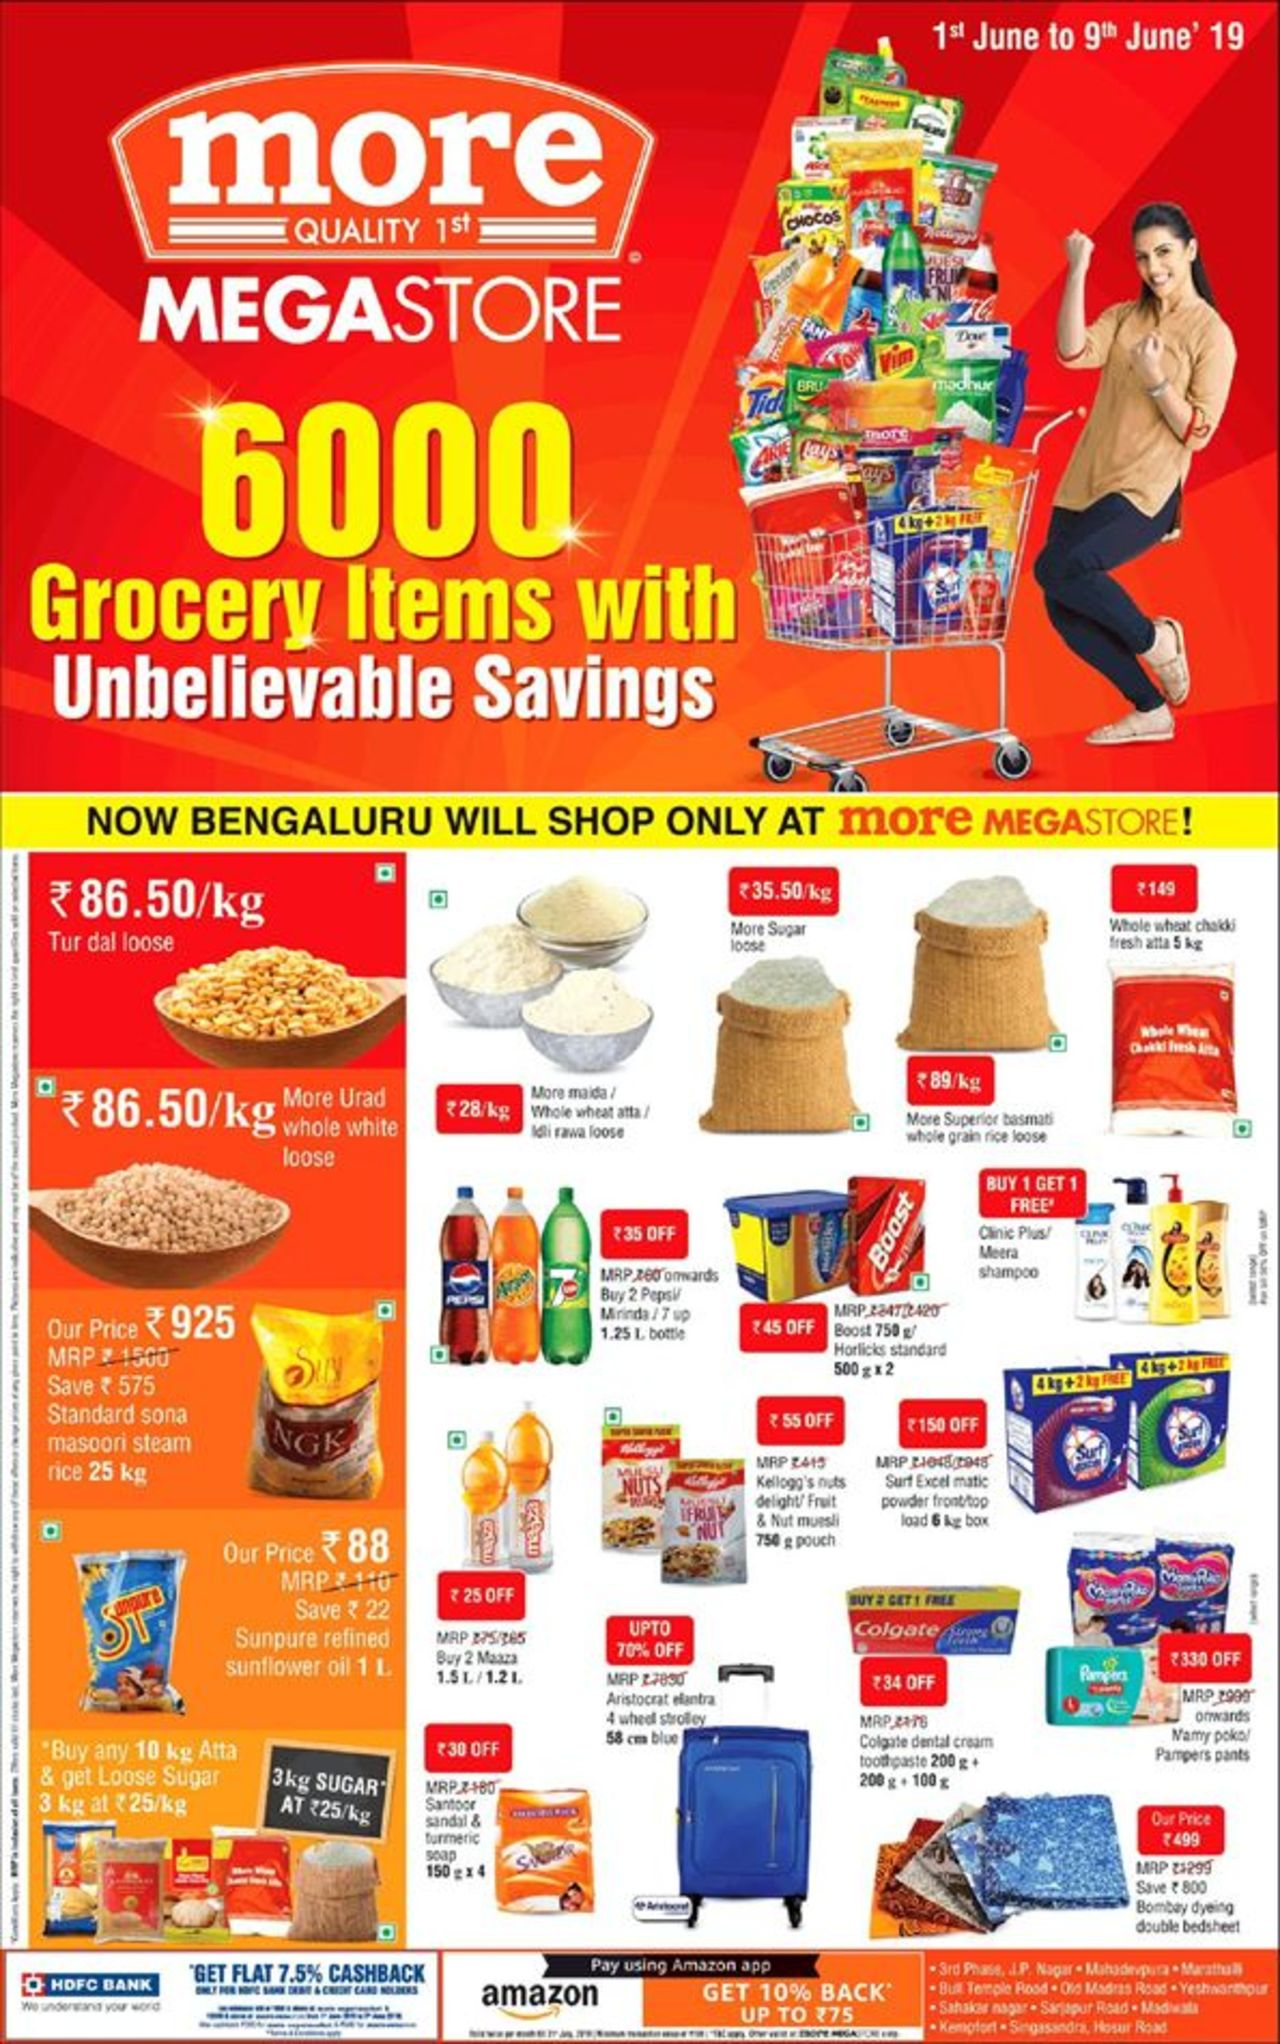 More Supermarket catalogue valid from 01/06/2019 - page number 1